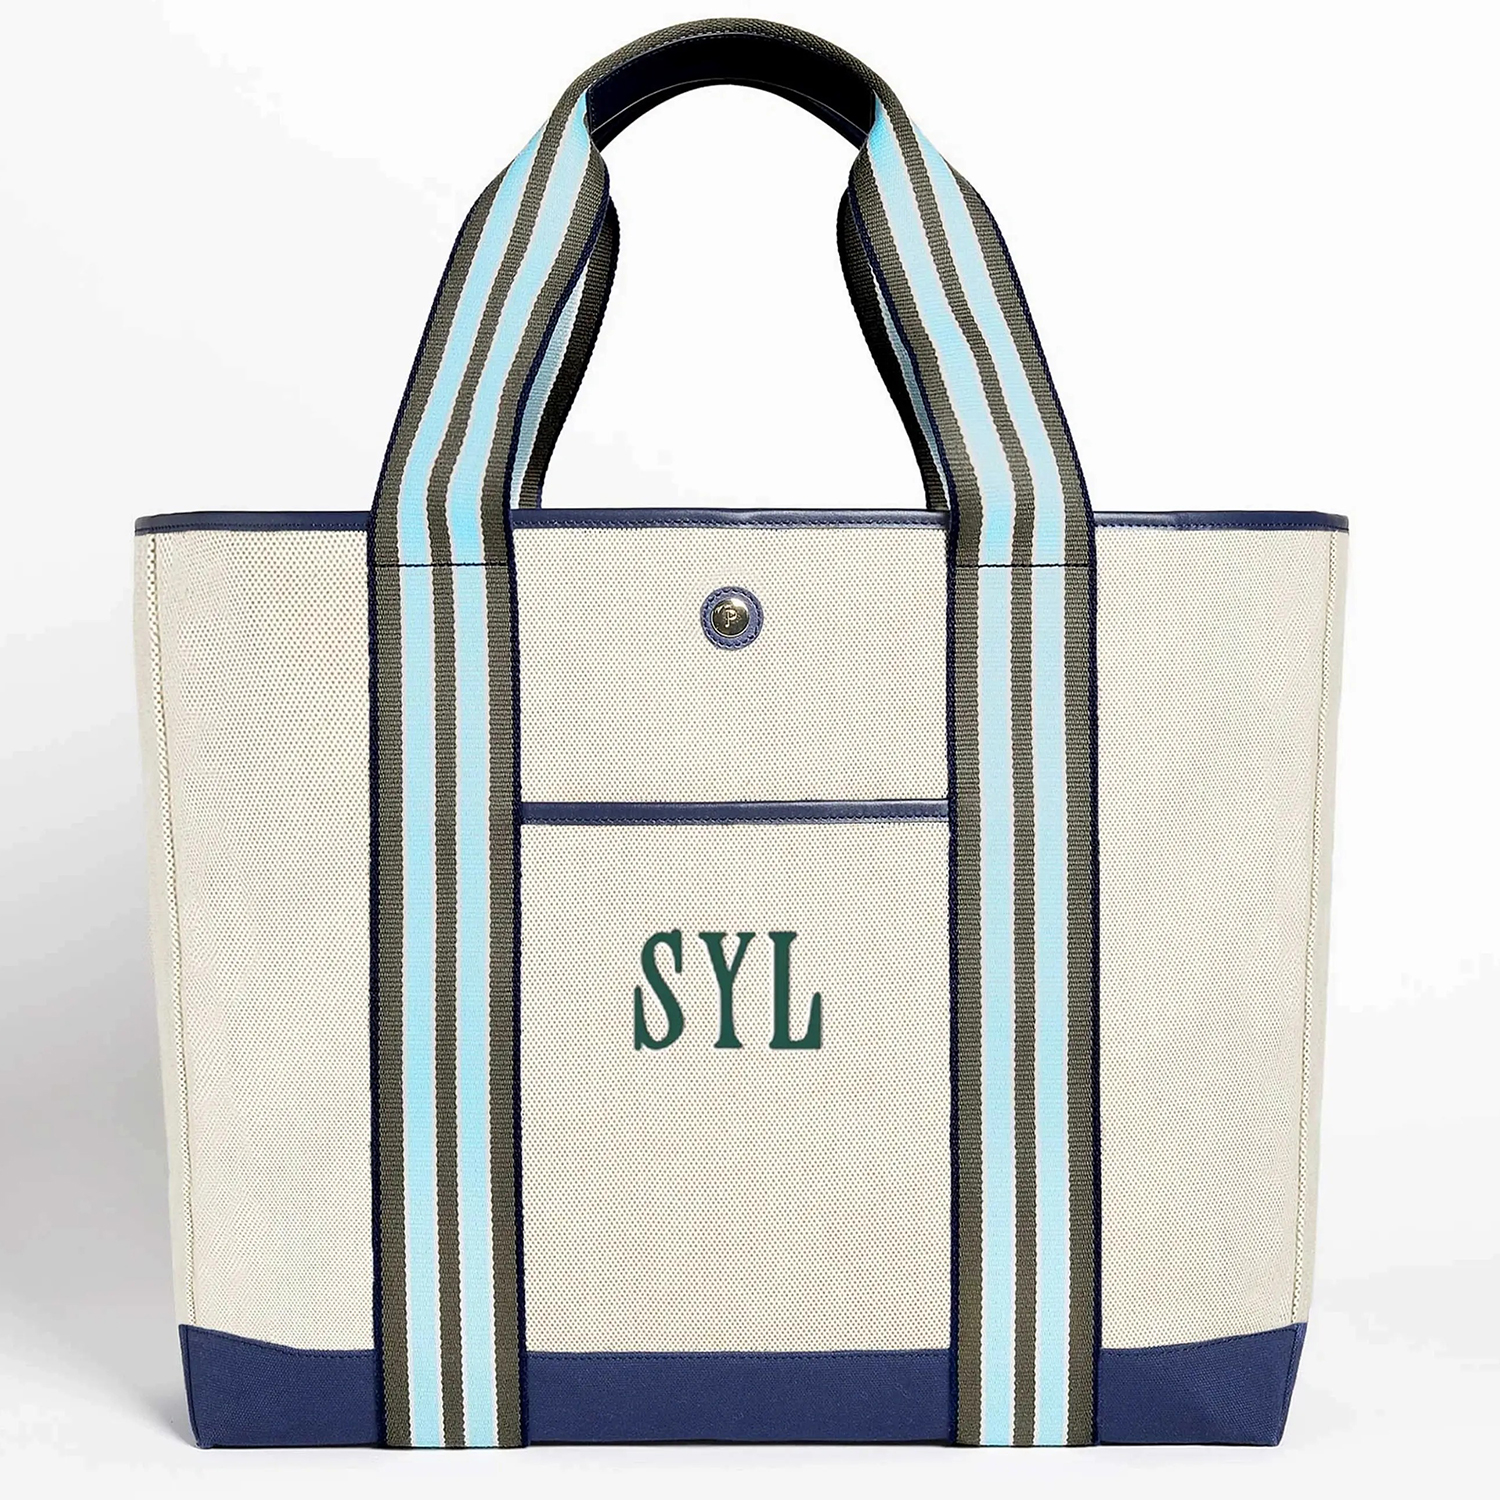 updates on totes